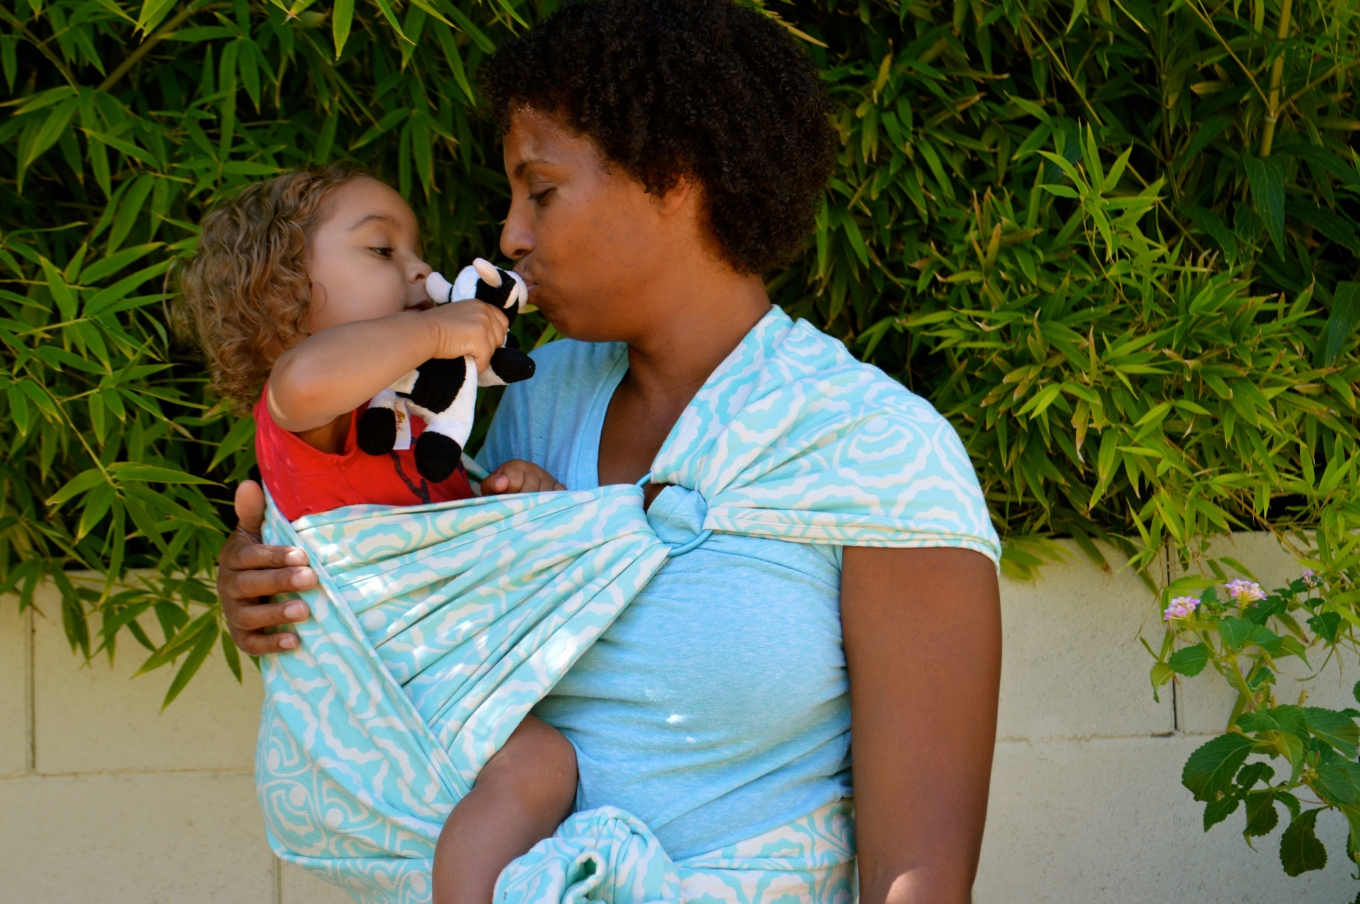 Natural haired African American Momma with her curly haired blond twin toddler in a teal green woven wrap with scalloped seashells and pearls in a Reinforced Robin's Hip Carry with a Ring. The Momma has her hand gently around baby's back and is kissing a stuffed animal cow baby is offering to Momma.